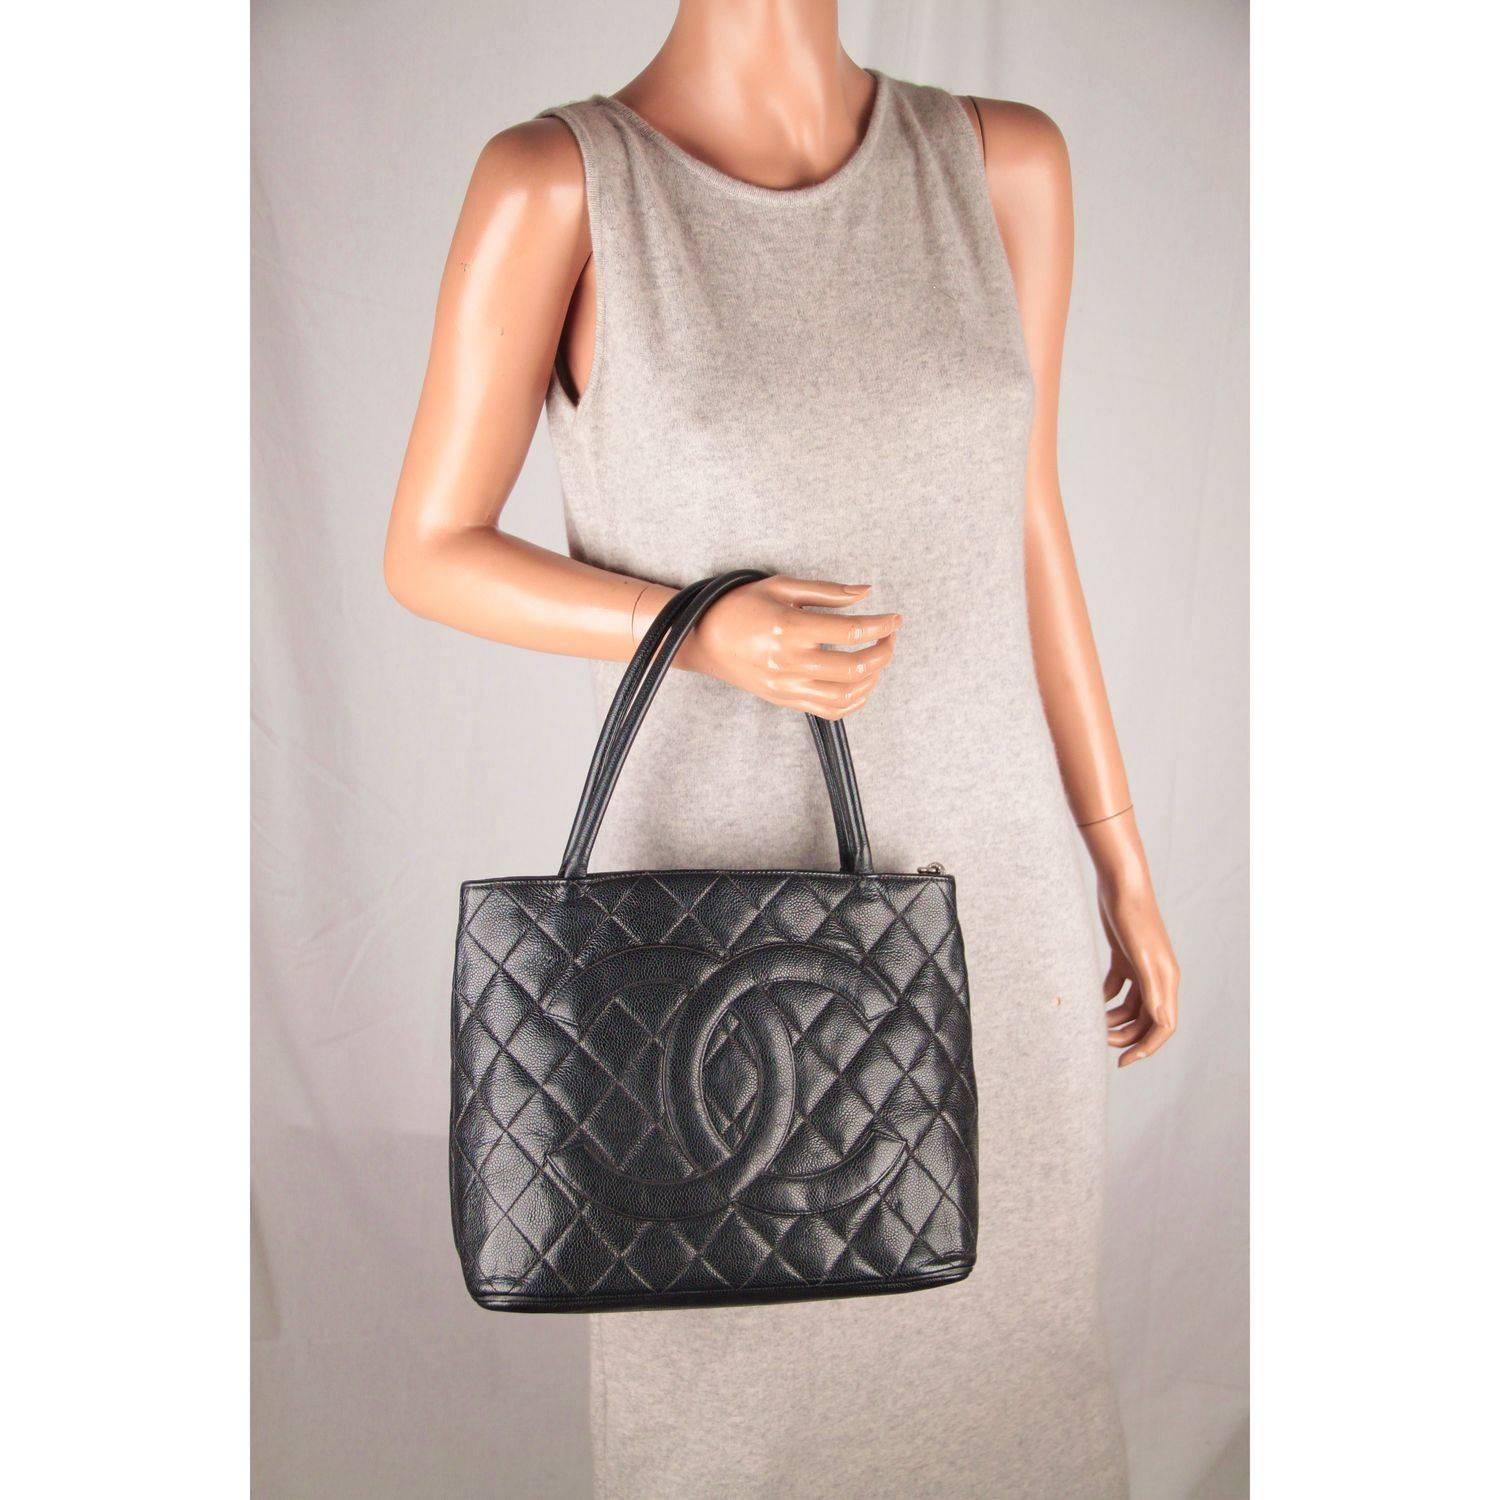 cdf80588bf CHANEL Black Quilted Caviar Leather MEDALLION Tote Bag